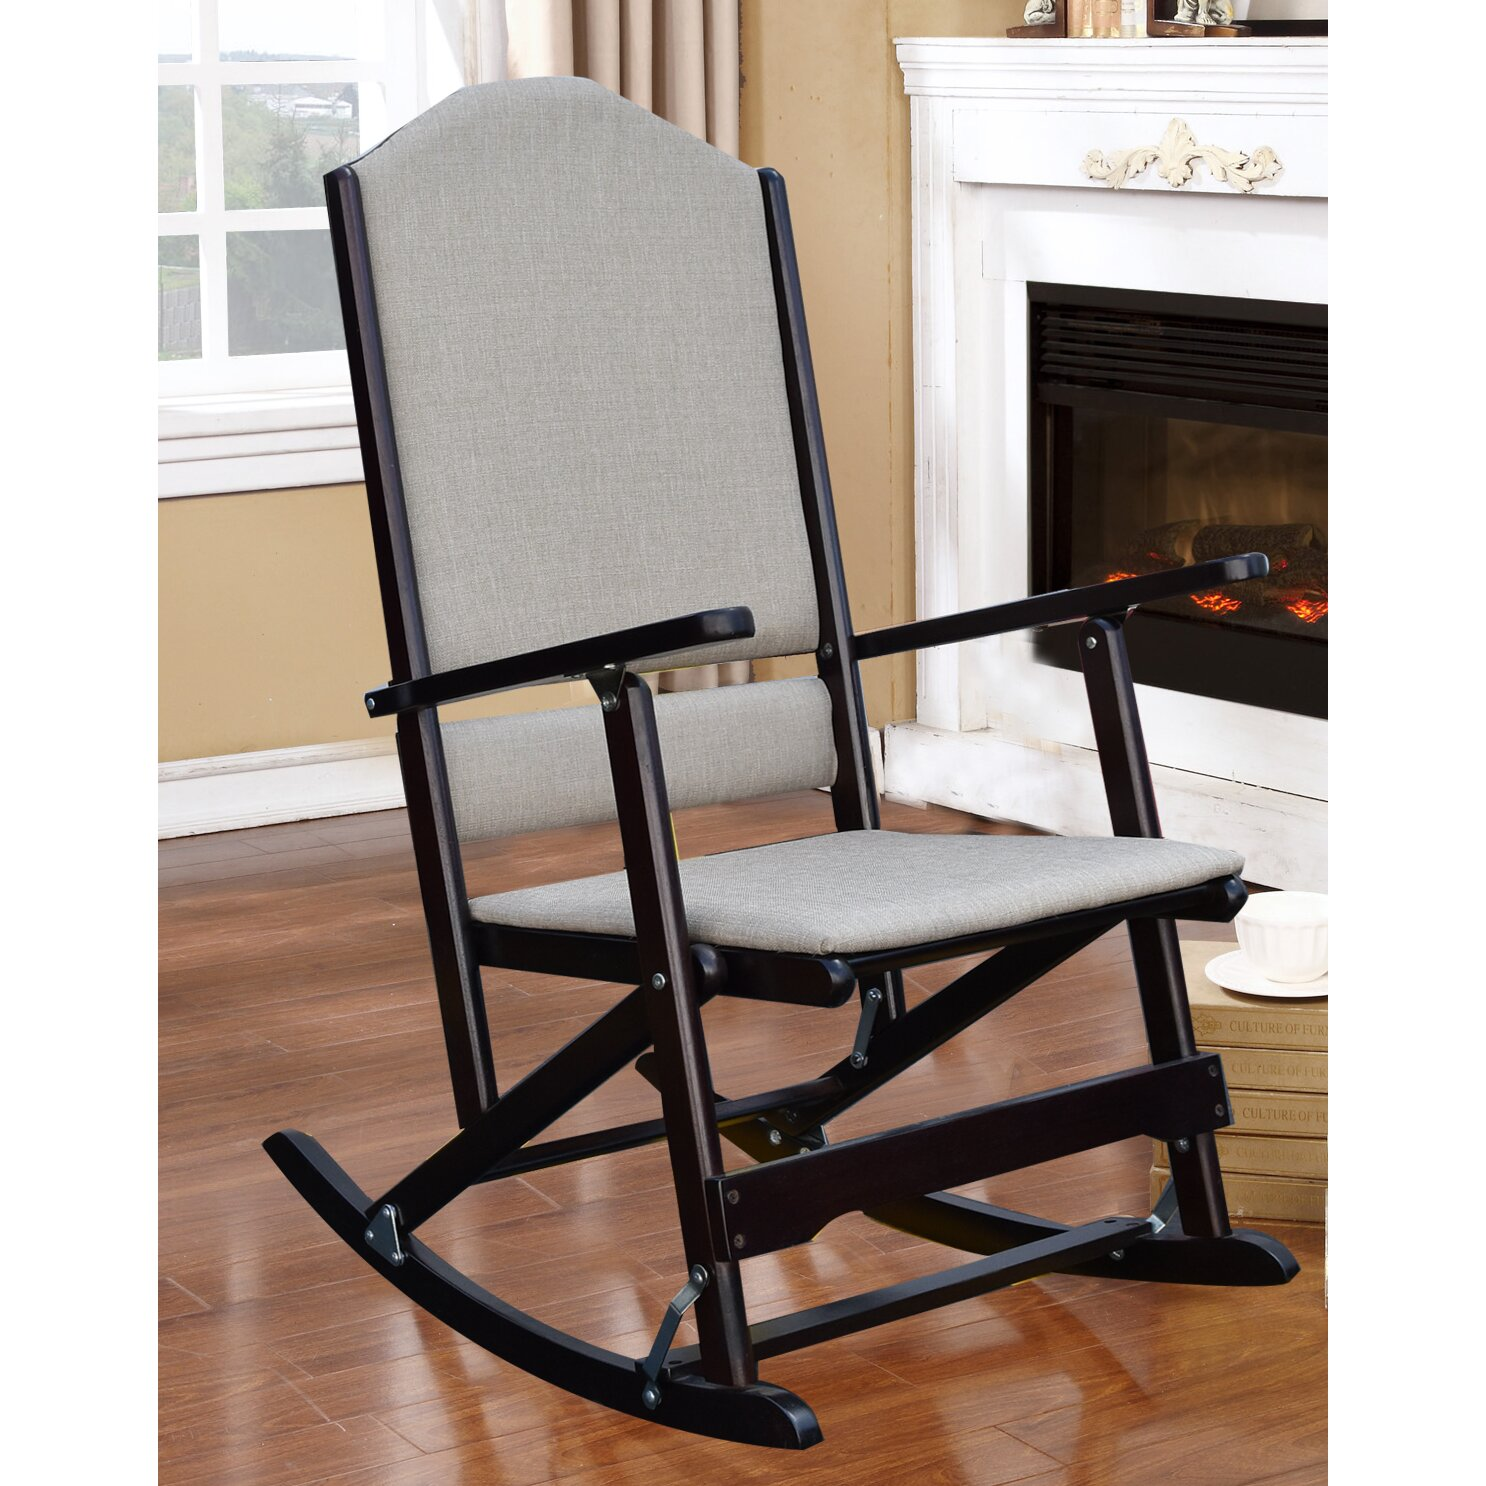 ... Cedar Creek Solid Wood Folding Rocking Chair & Reviews  Wayfair.ca